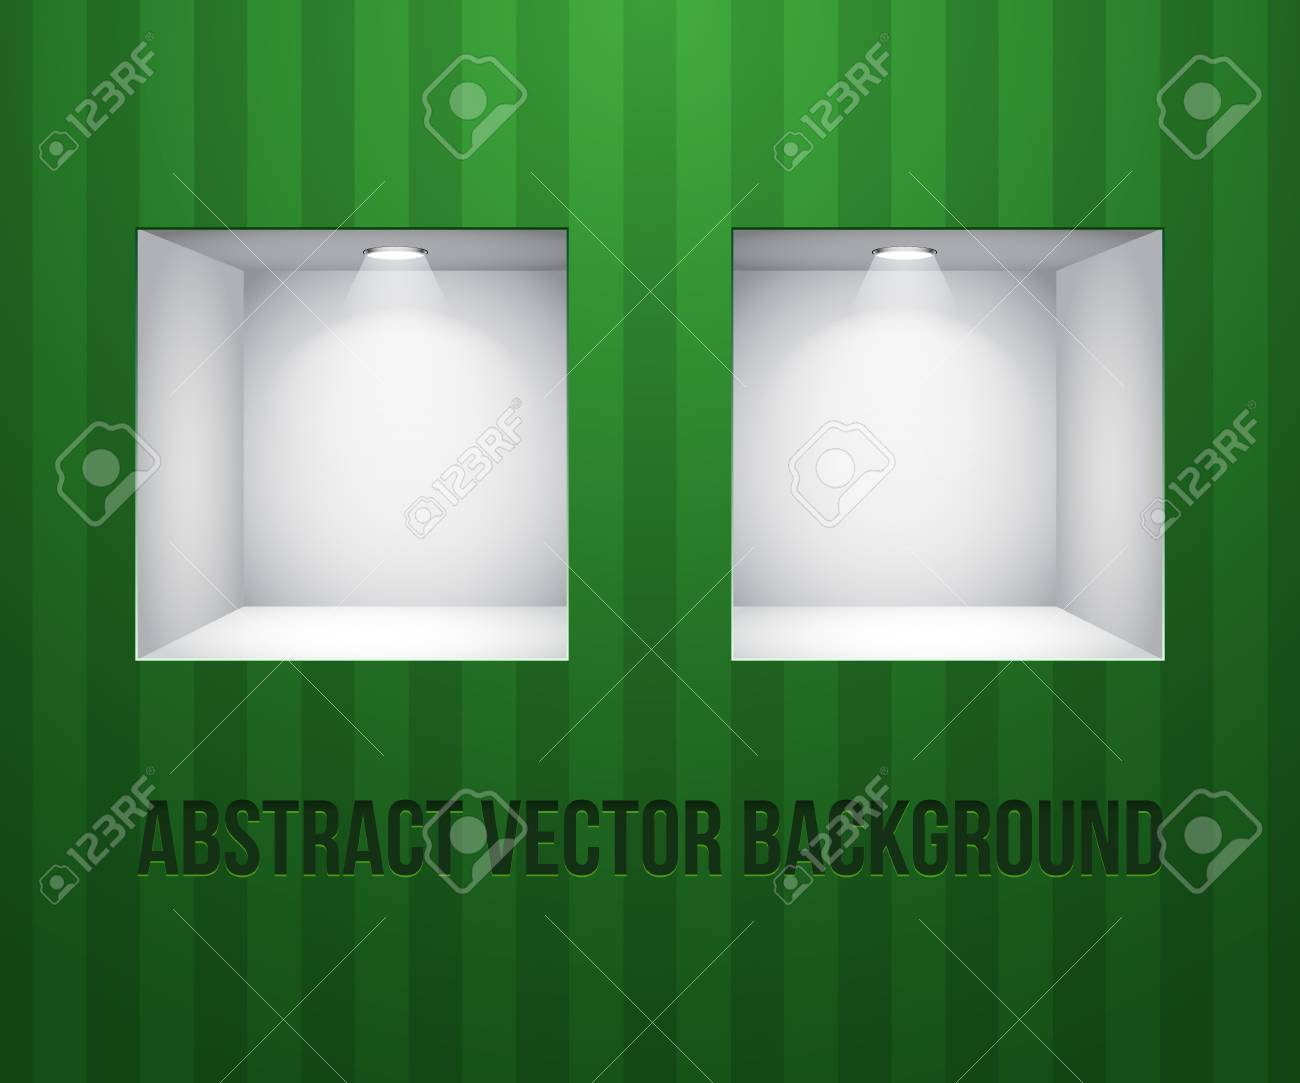 Two Empty Shelves For Exhibit In The Wall Green On Striped Green Wall Stock Vector - 14668538